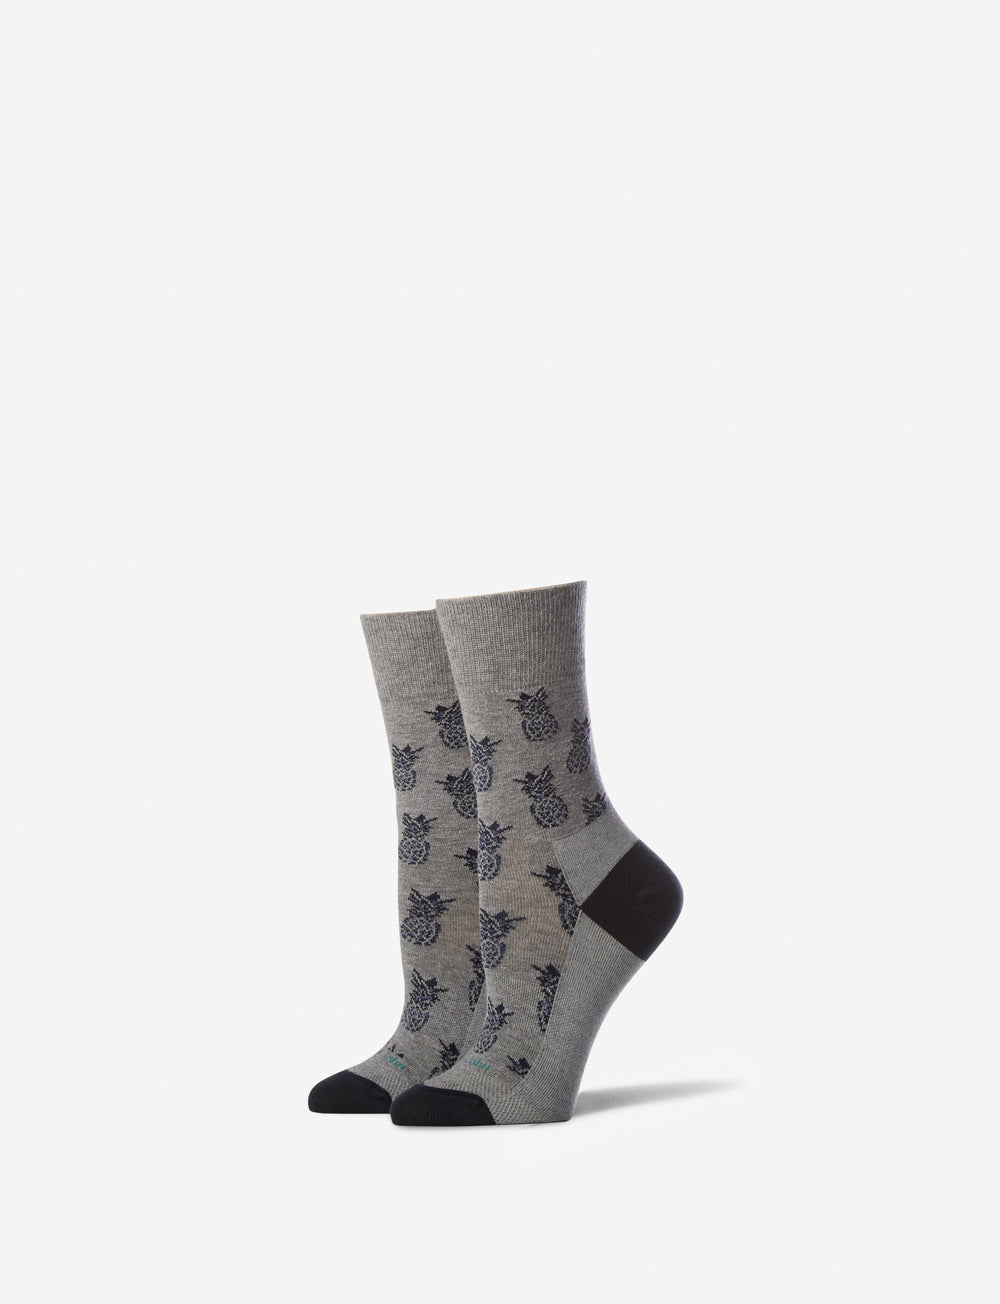 Women's Pineapple Stay Up Dress Sock Details Image